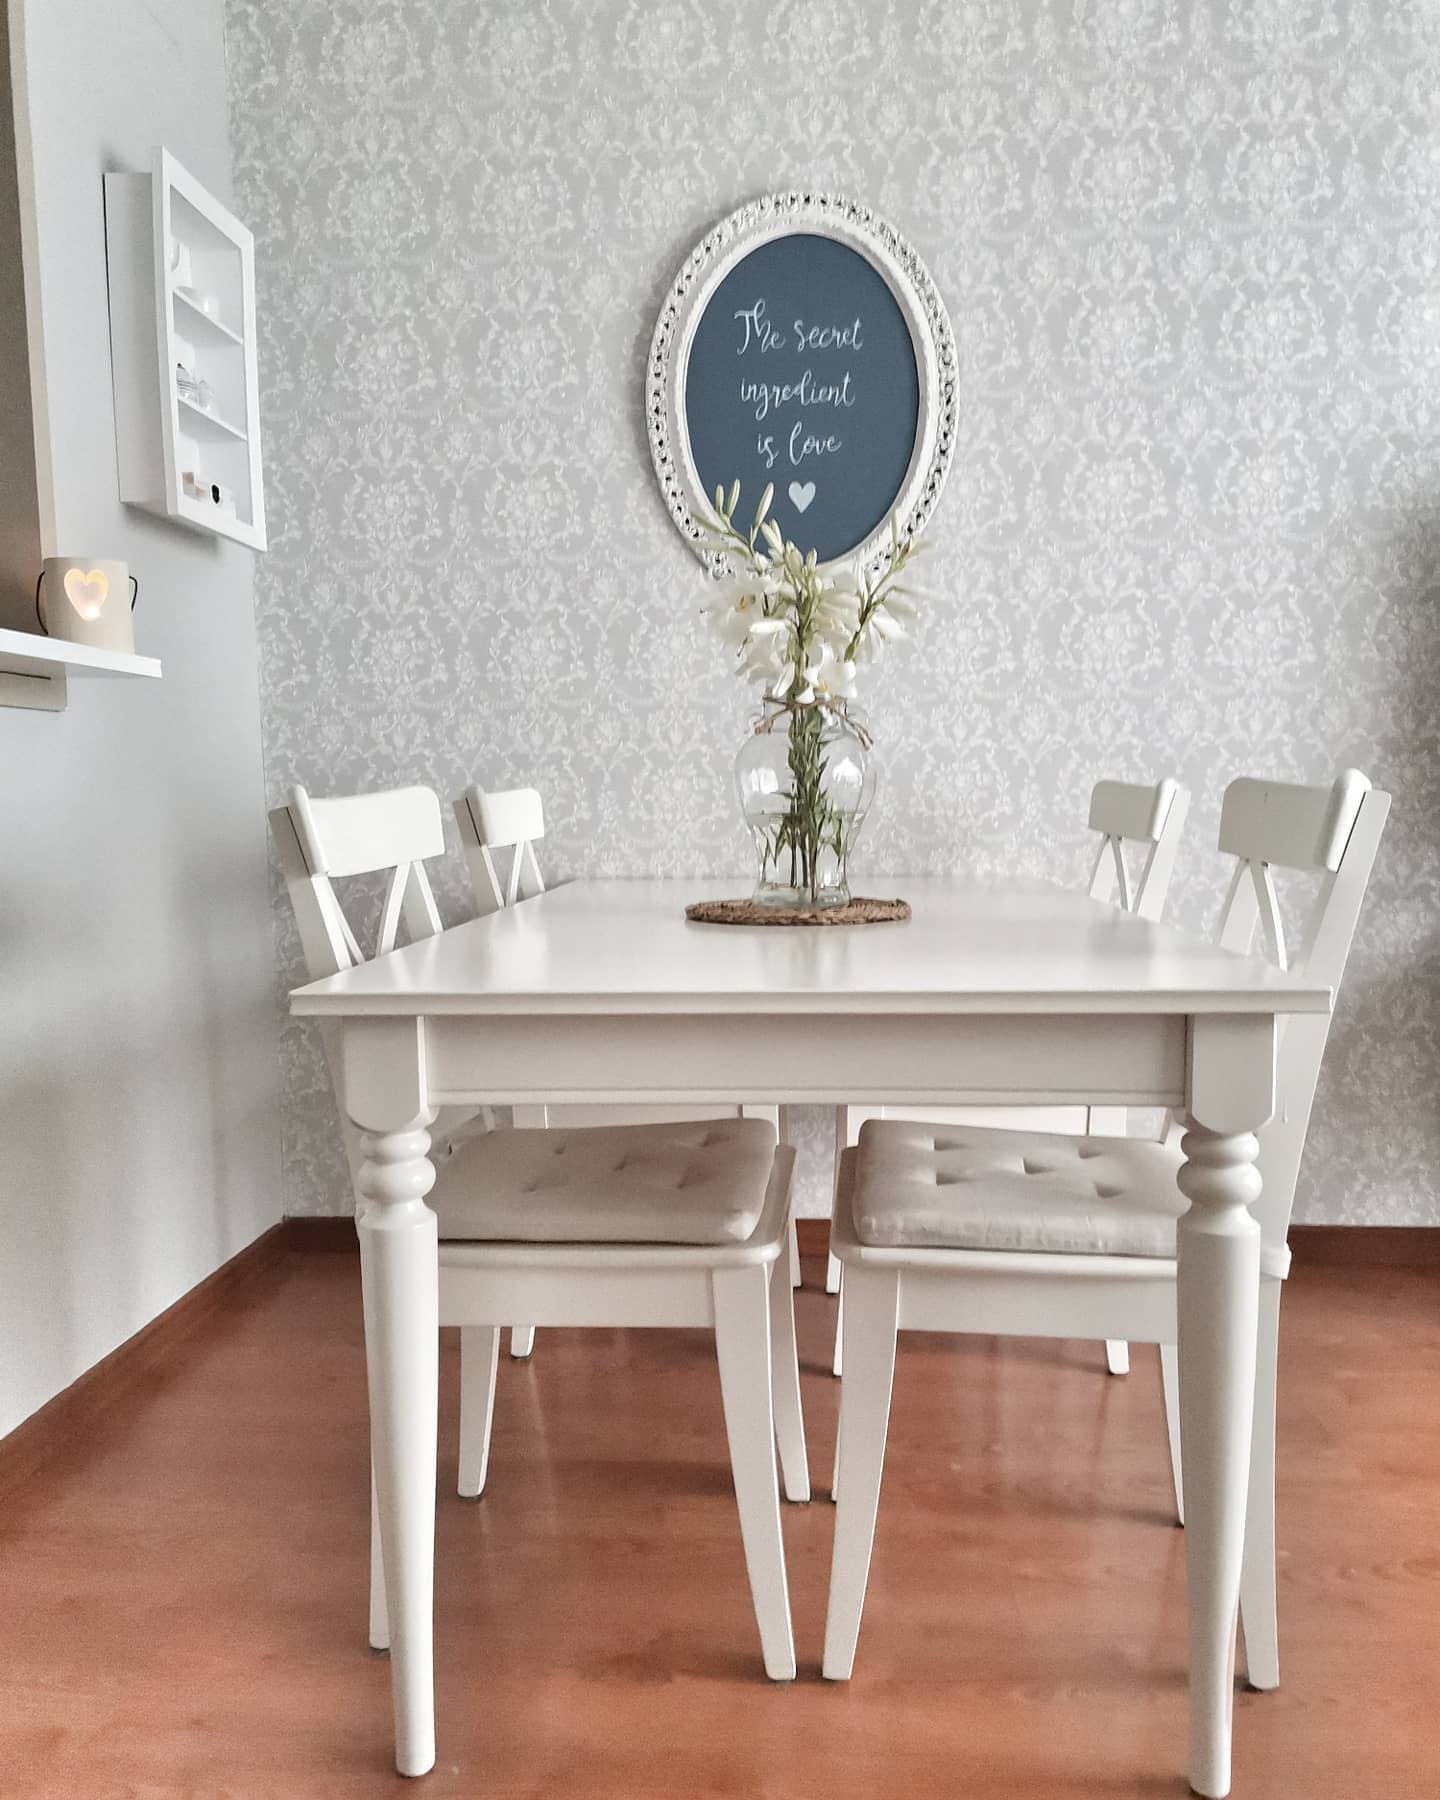 Cottage Dining Room Wall Decor Ideas -our.loved.place